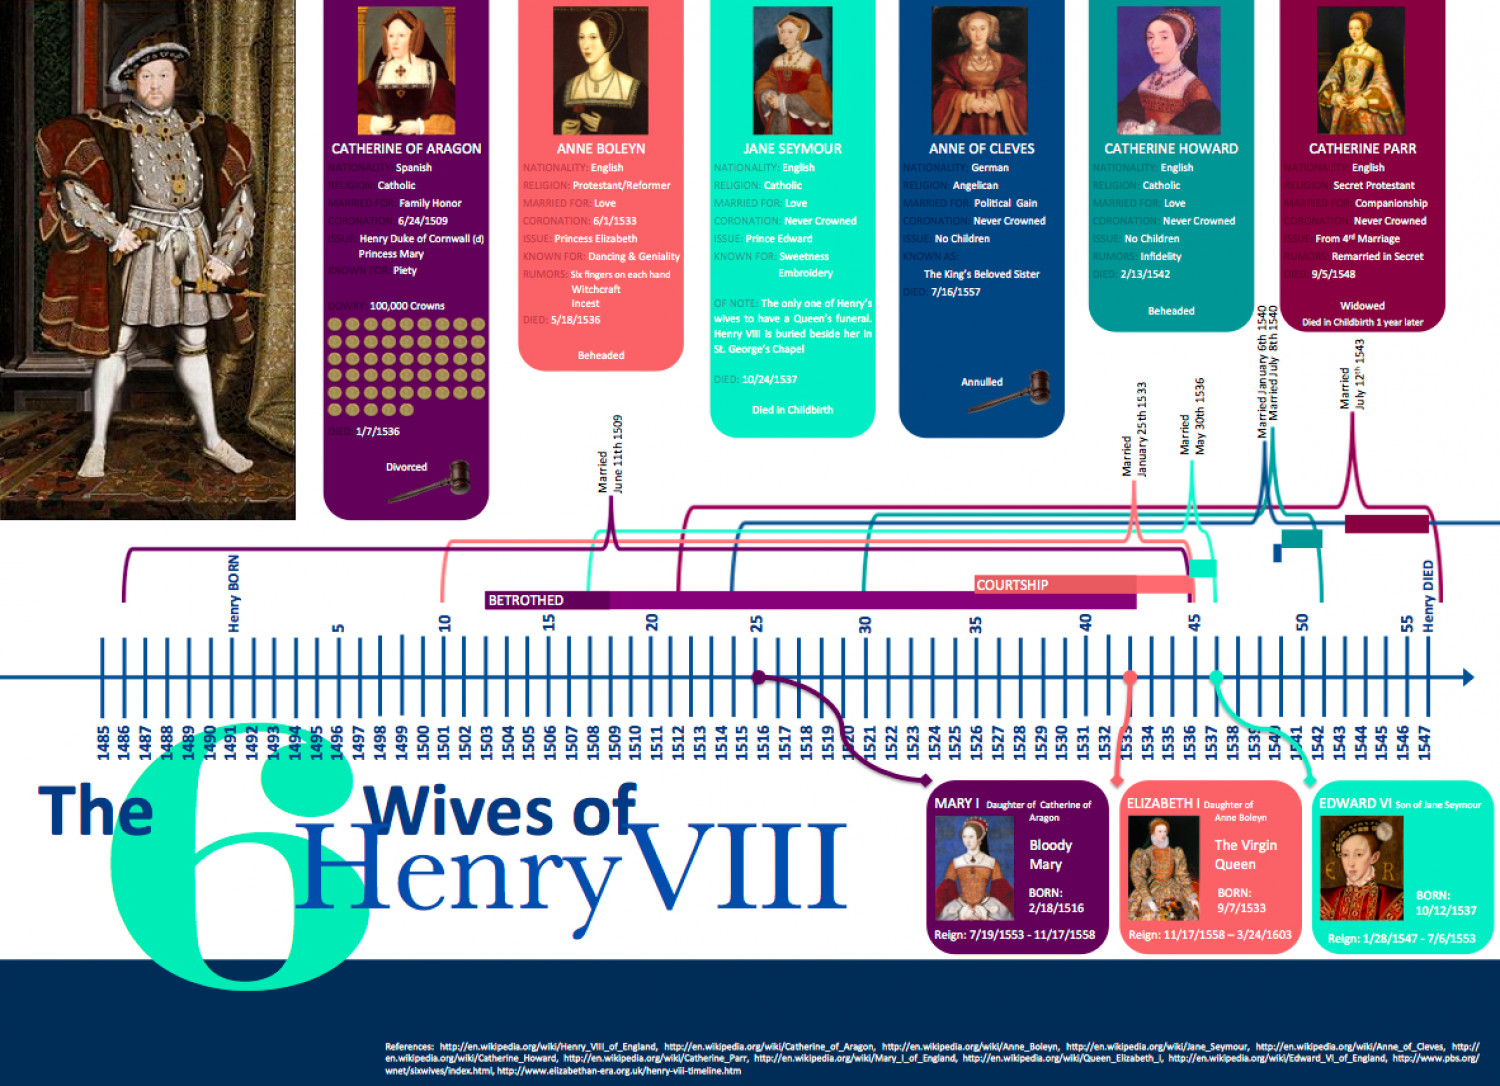 The 6 Wives of Henry VIII Infographic